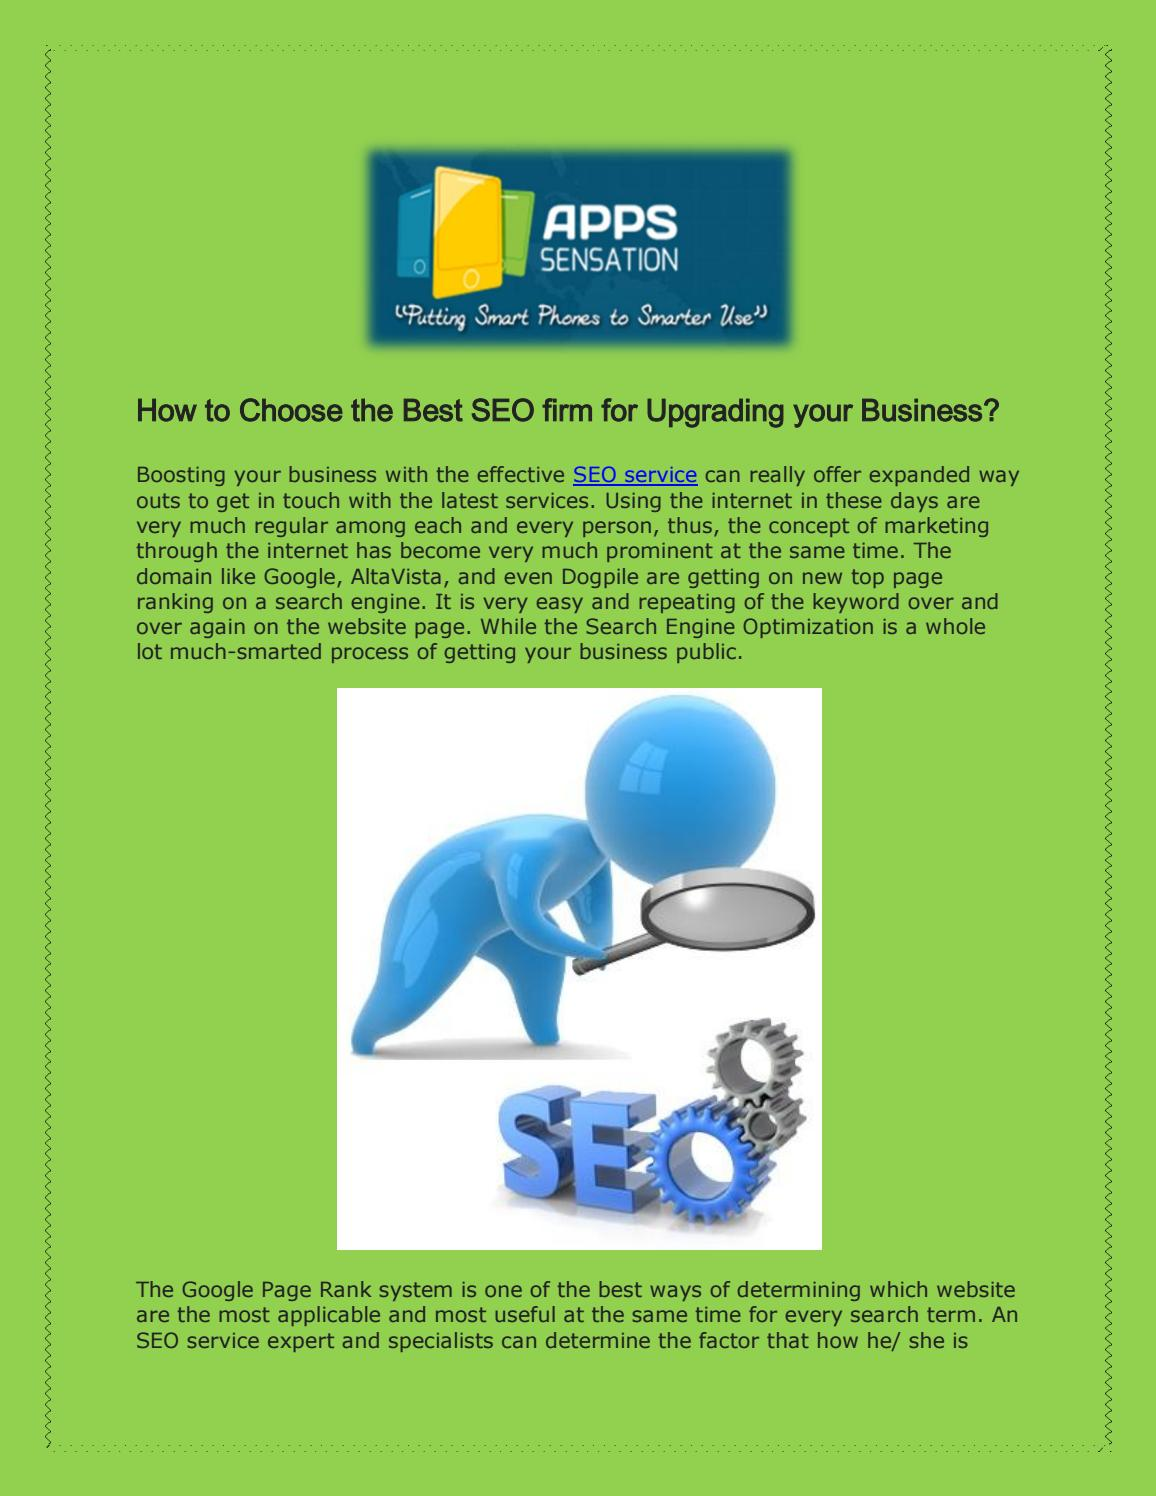 Choose The Best SEO Firm For Upgrading Your Business